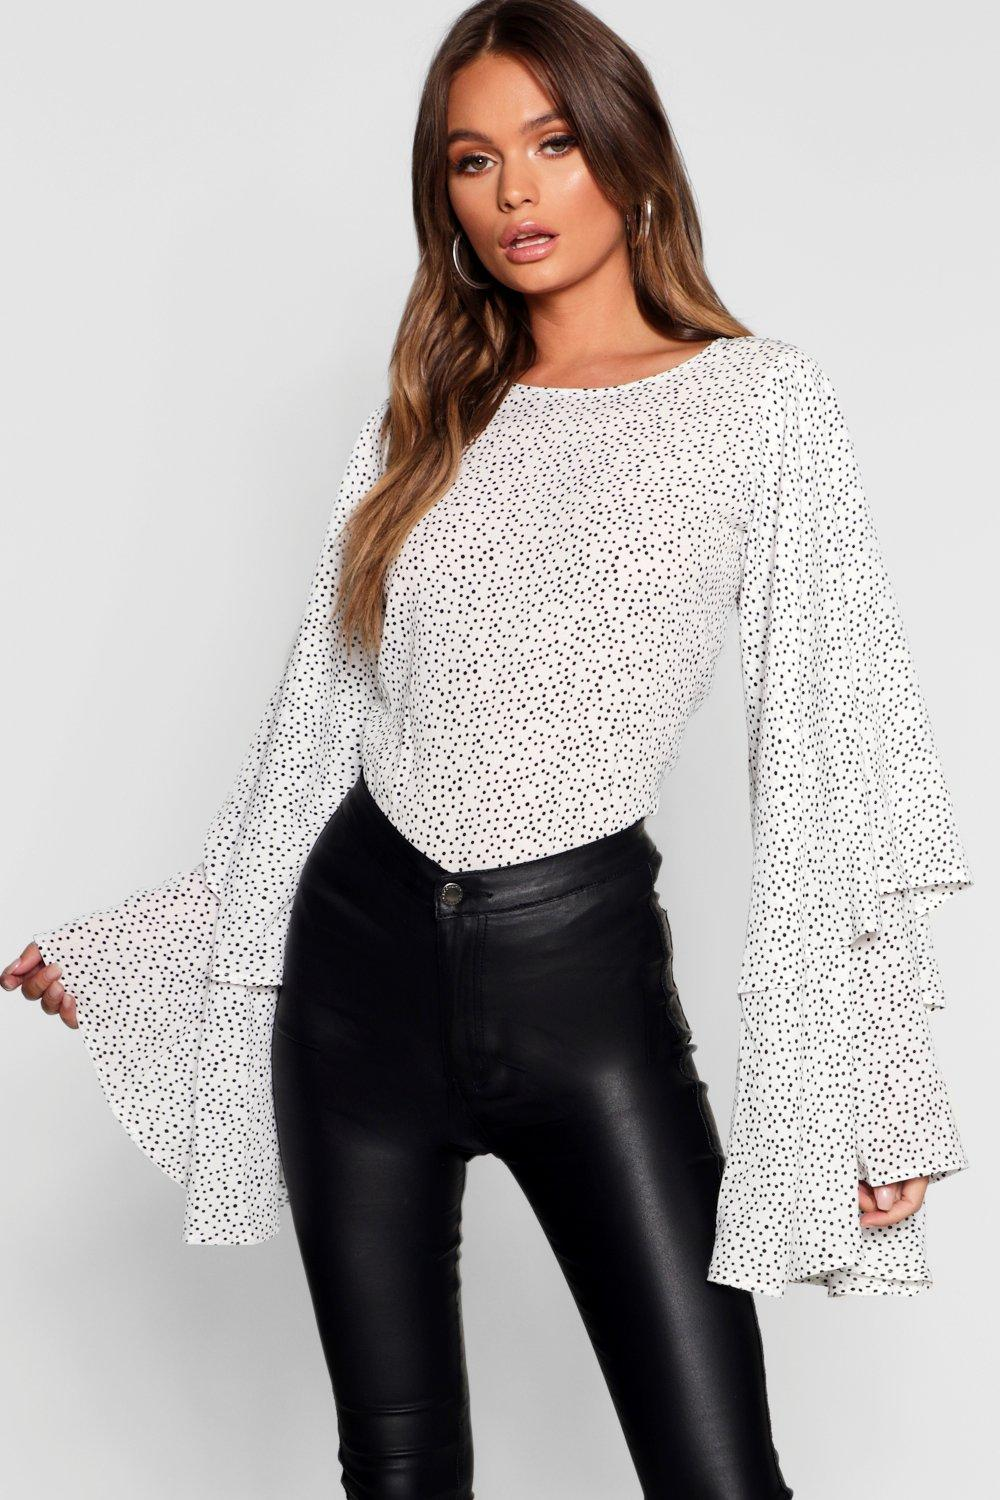 Spot Exaggerated Top Sleeve black Print rrPqnBpzw5